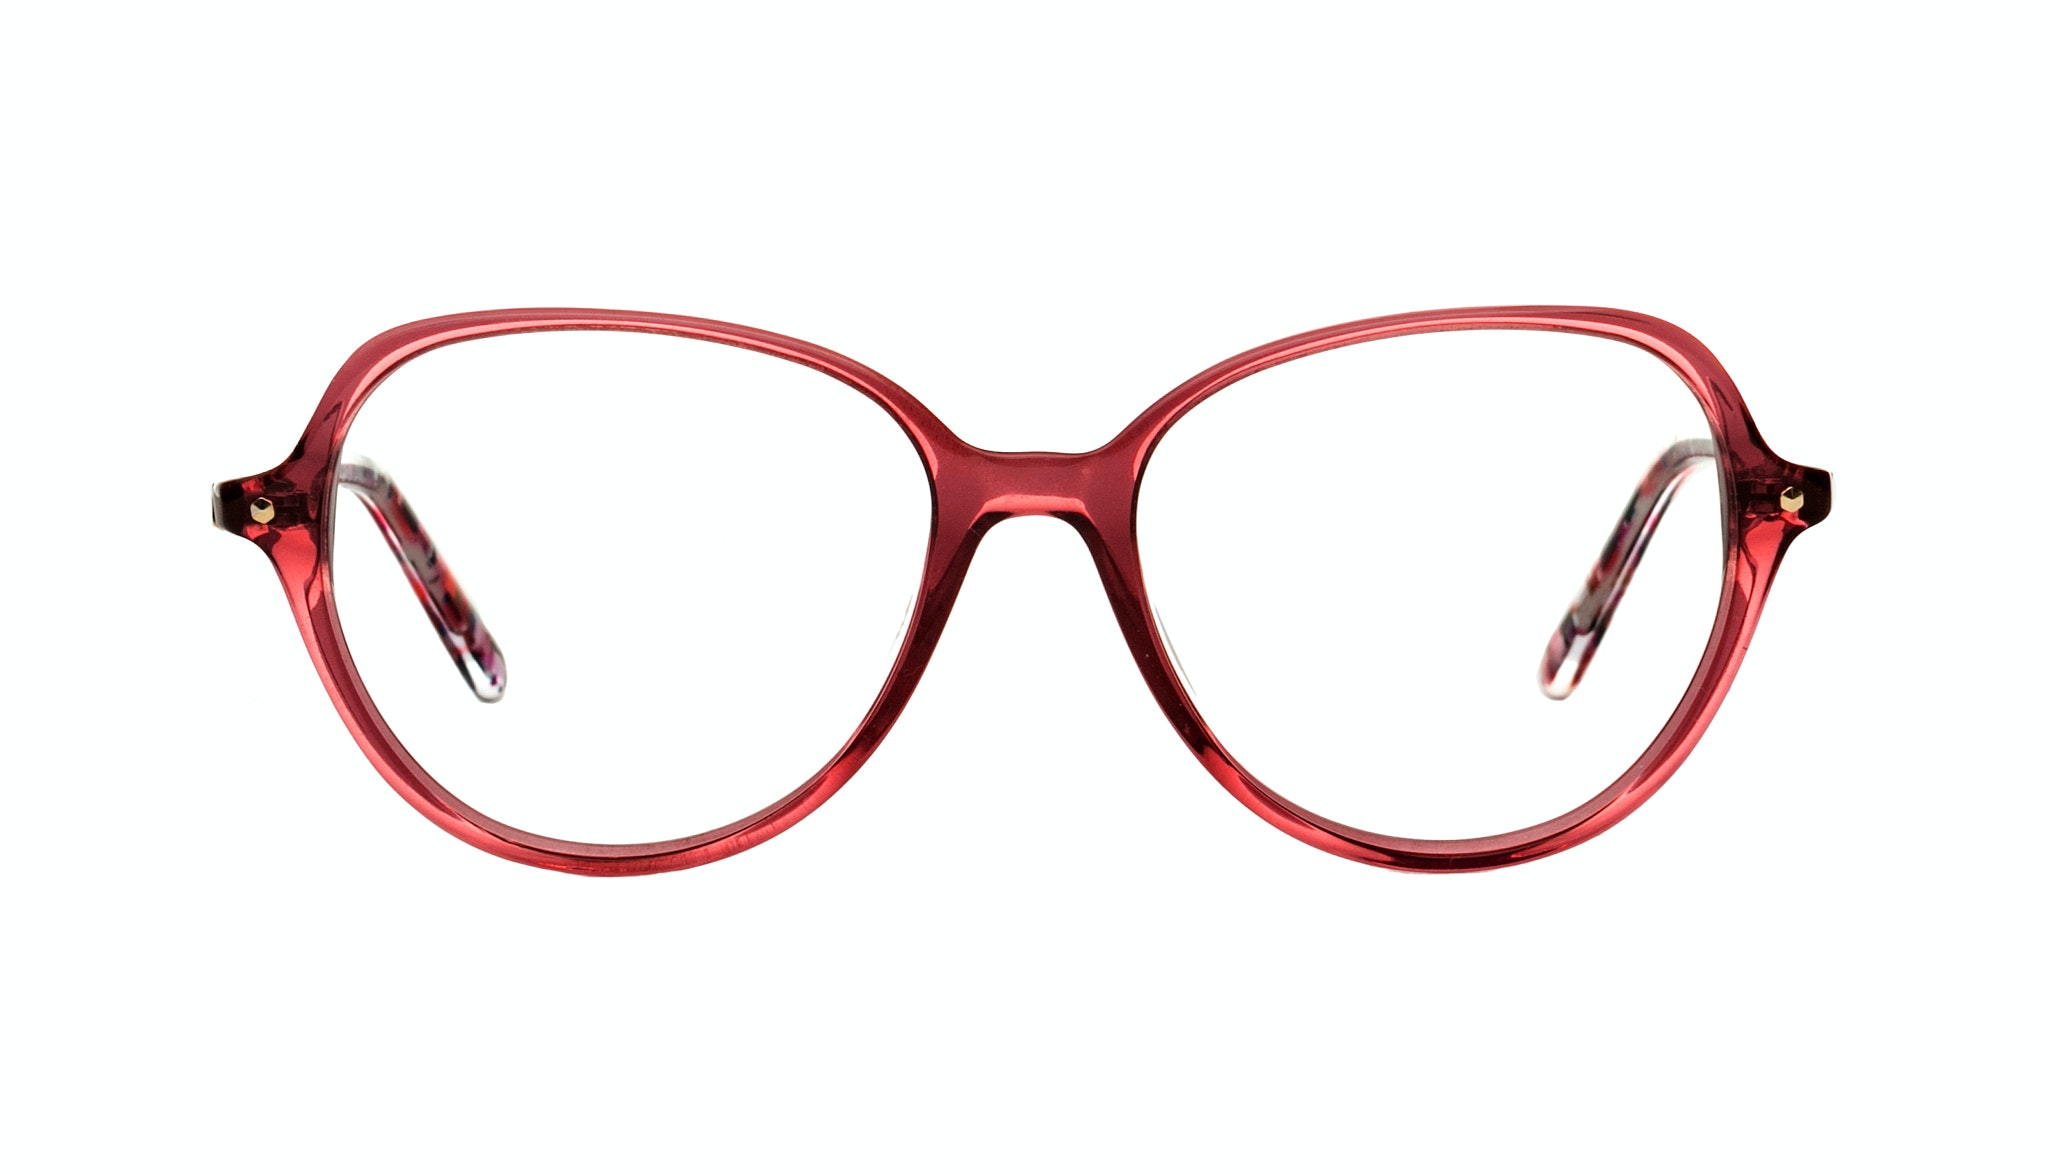 Affordable Fashion Glasses Round Eyeglasses Women Dazzle pink-berry Front